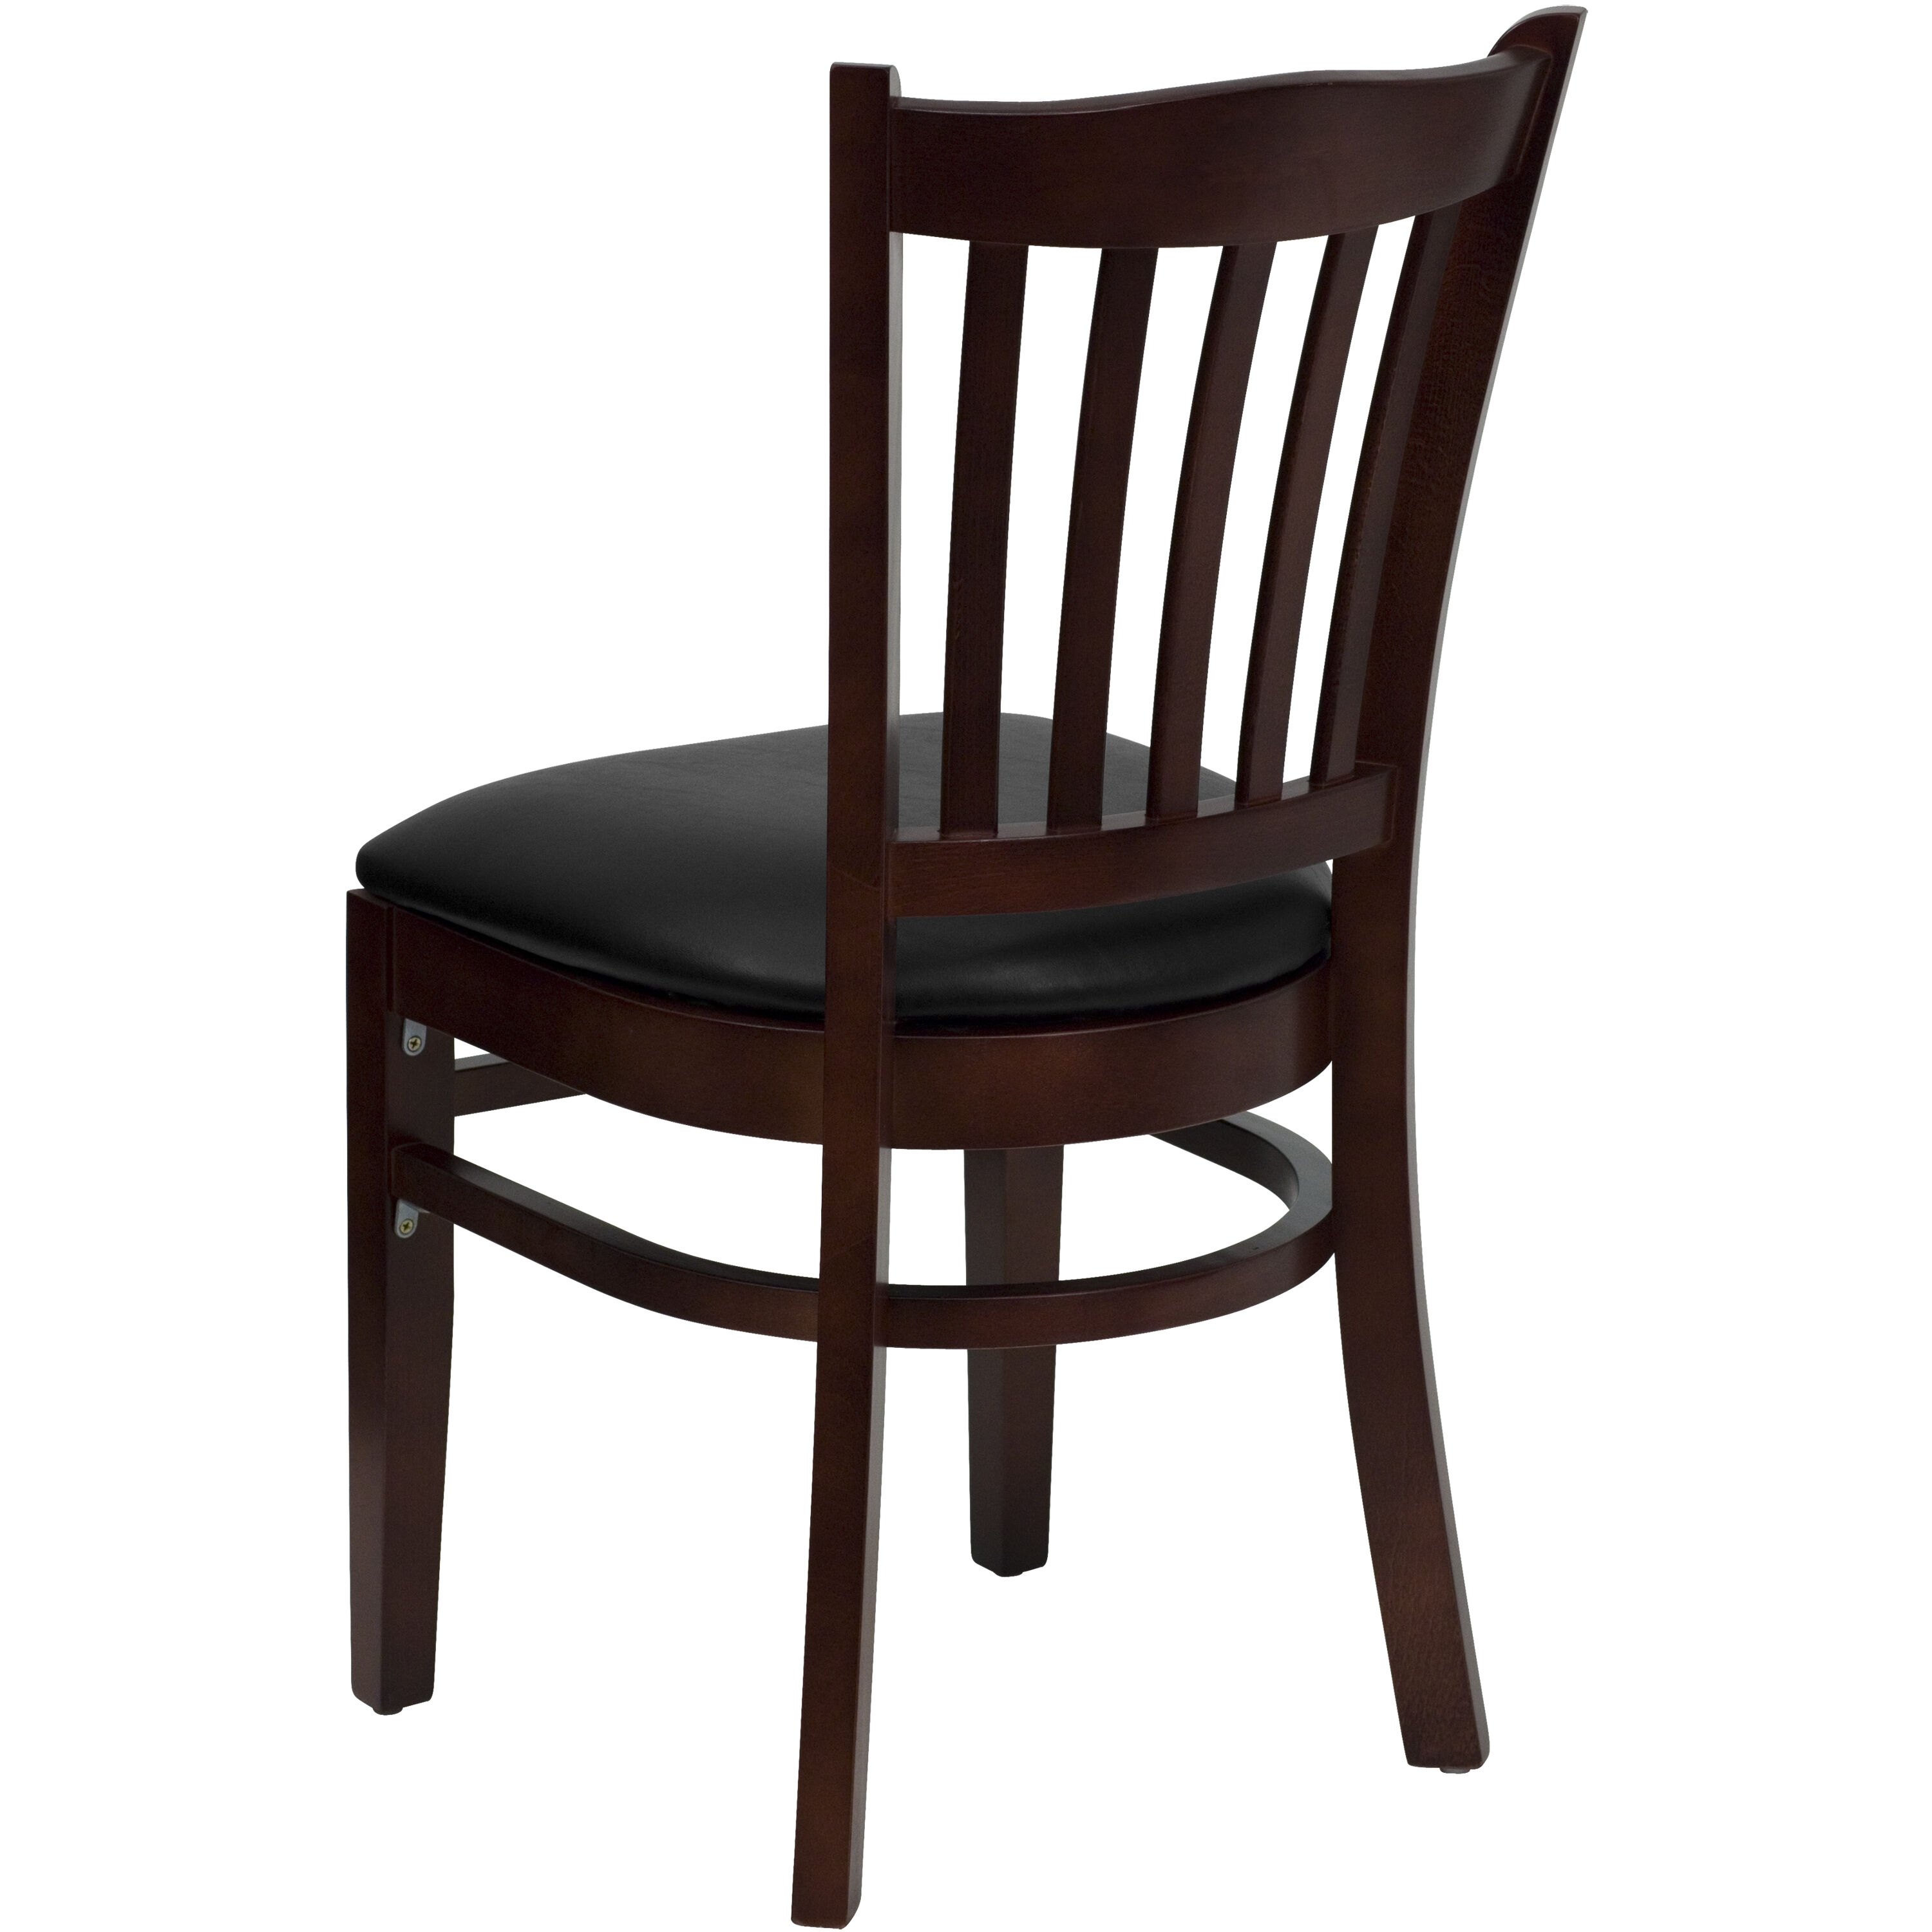 restaurant supply chairs fairfield chair prices t and d equipment bfdh 8242mbk tdr bizchair